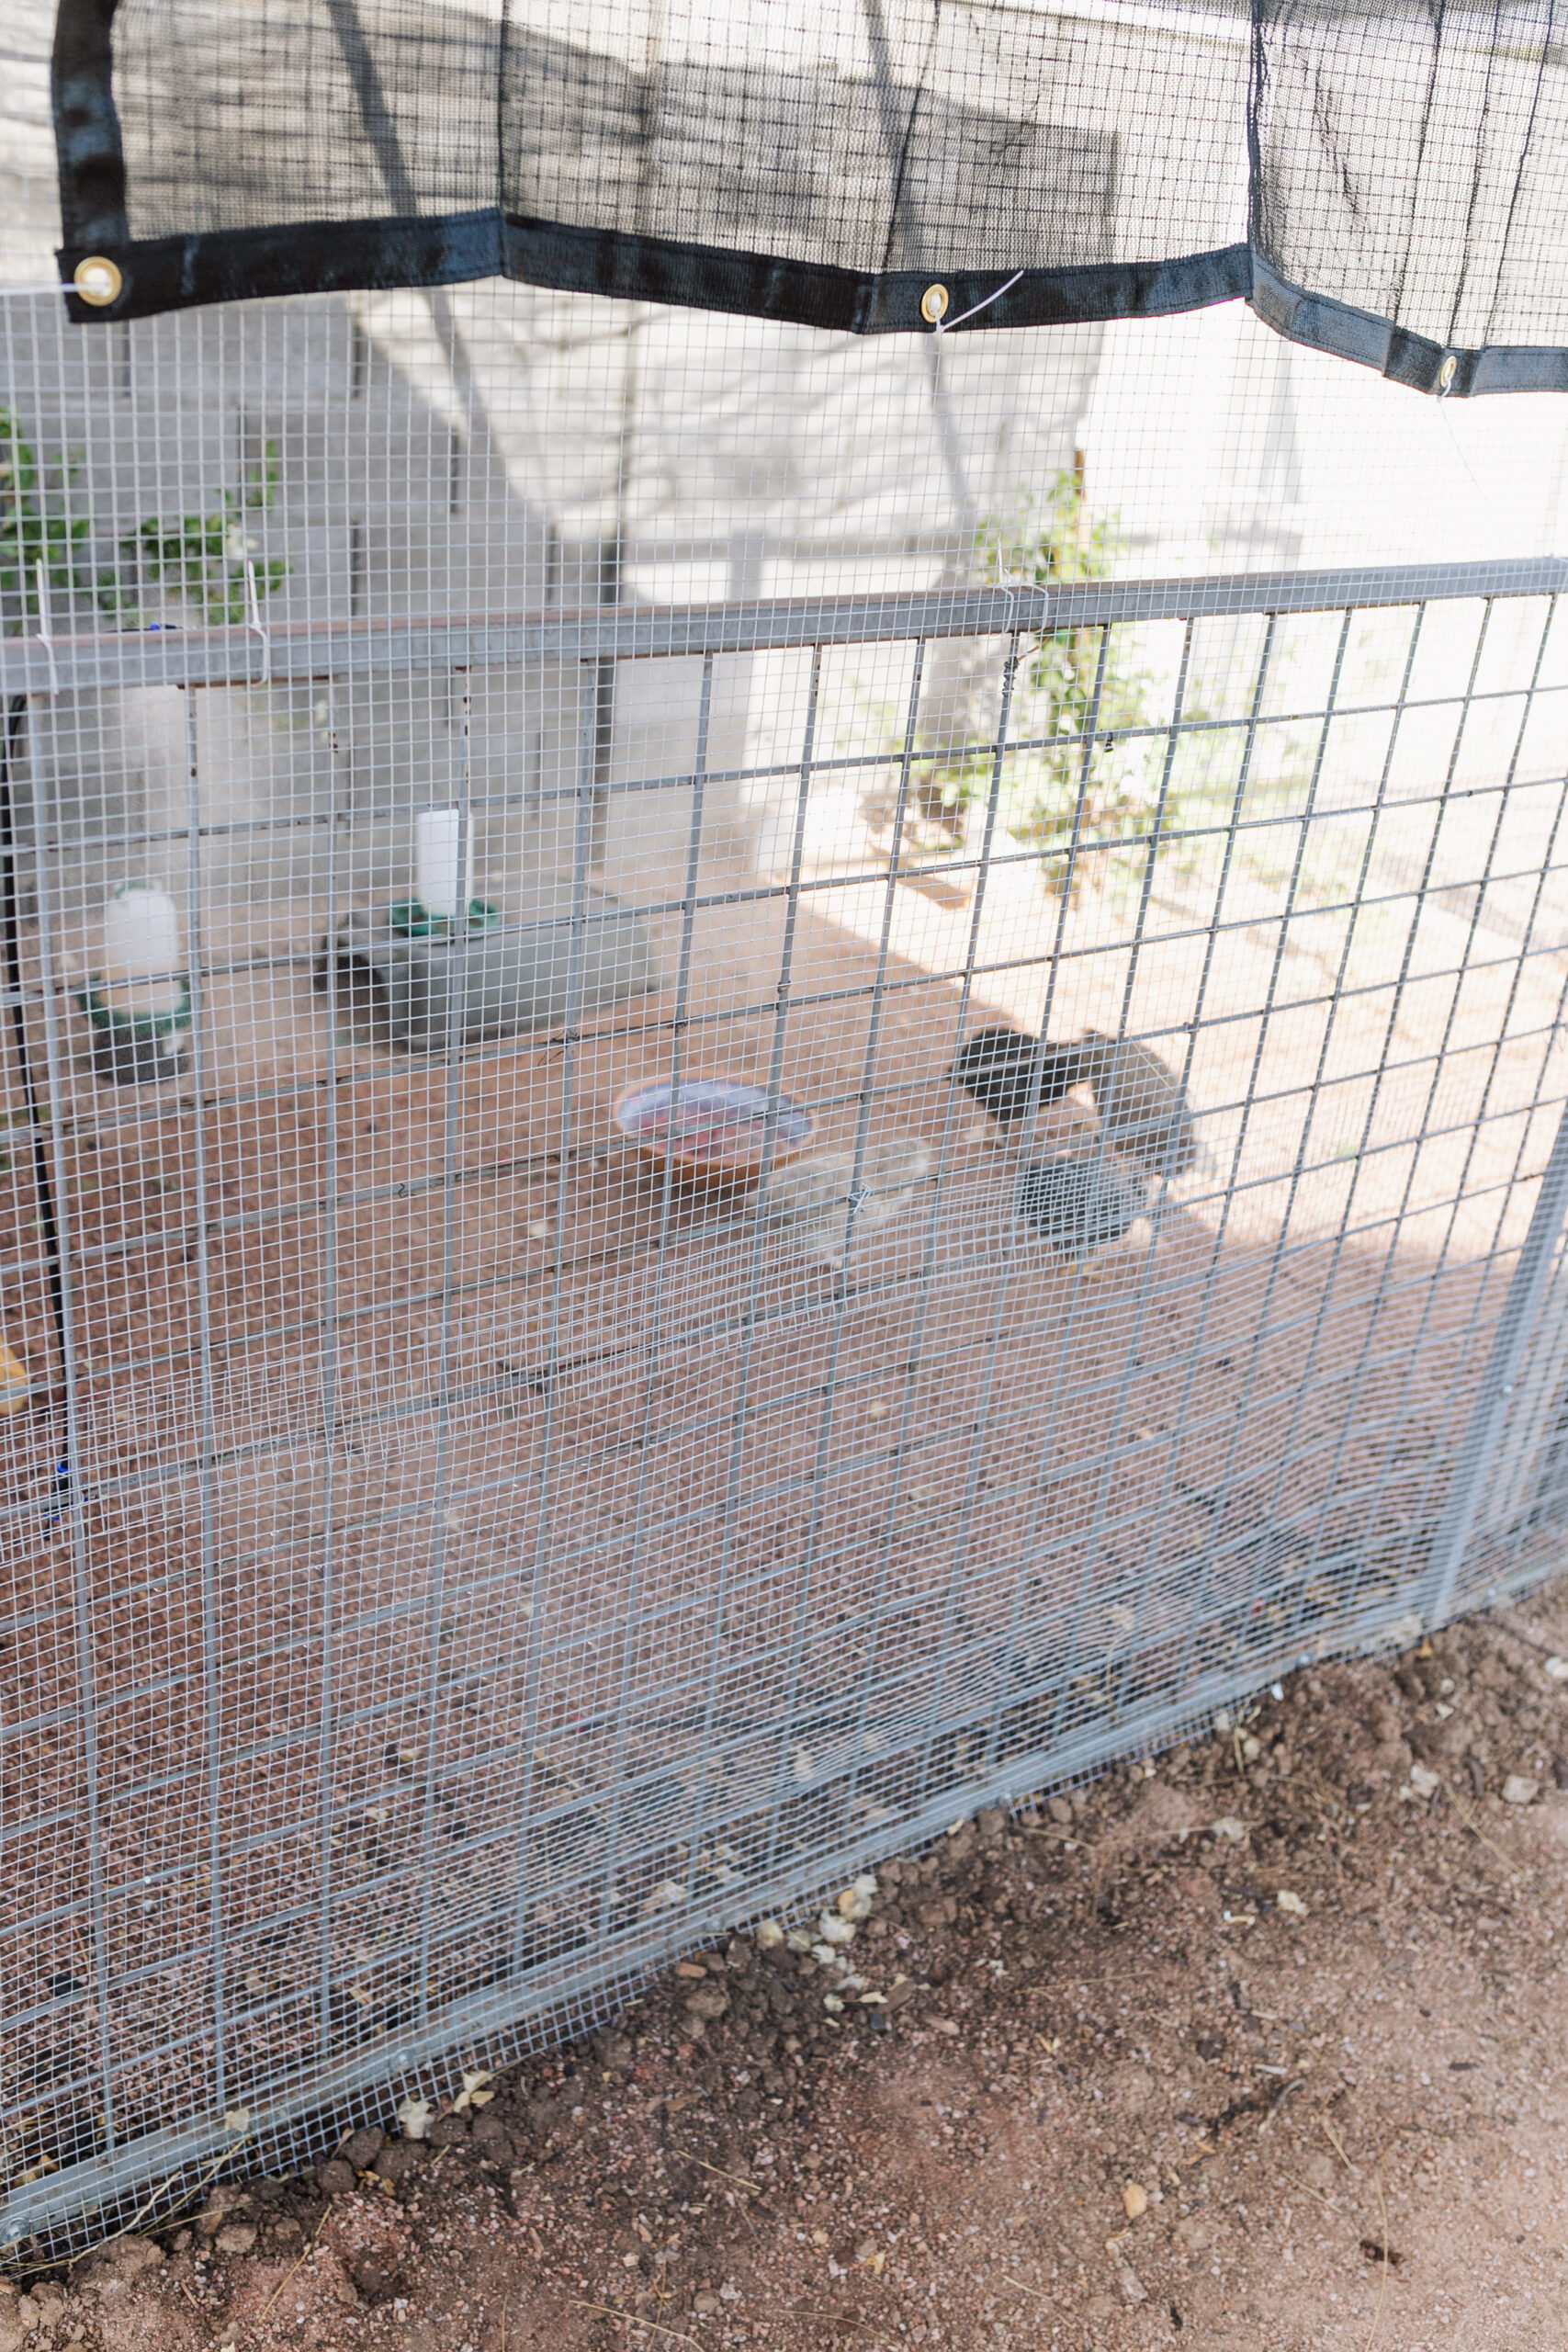 misters, plenty of water, and shade to keep our chickens cool in the summer desert heat. #thelovedesignedlife #theldlhome #desertchickens